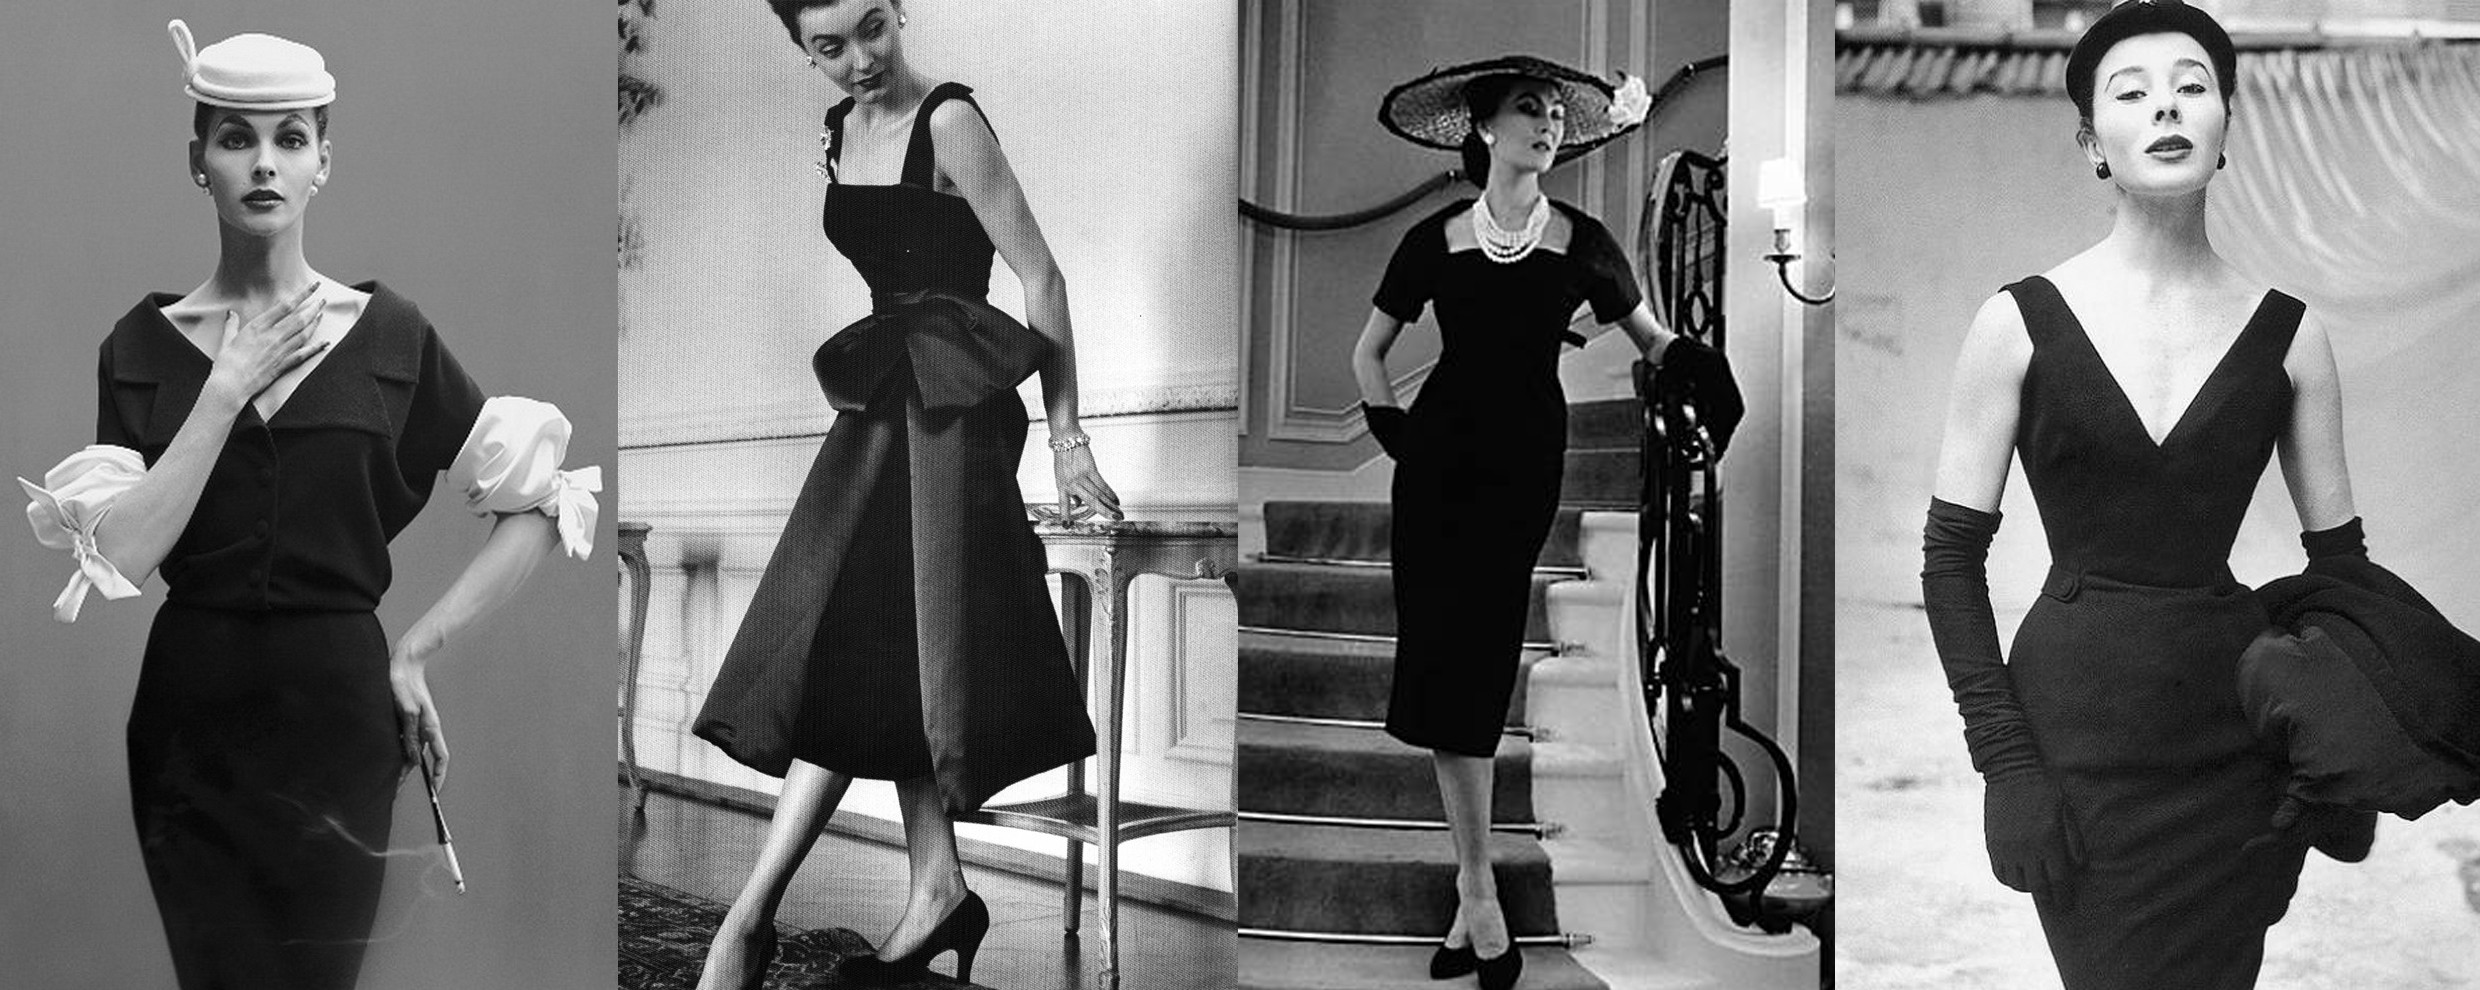 Fashion History Designers Edition Coco Chanel S 10 Most Iconic Designs By See Fashion The See Fashion Think Tank Medium